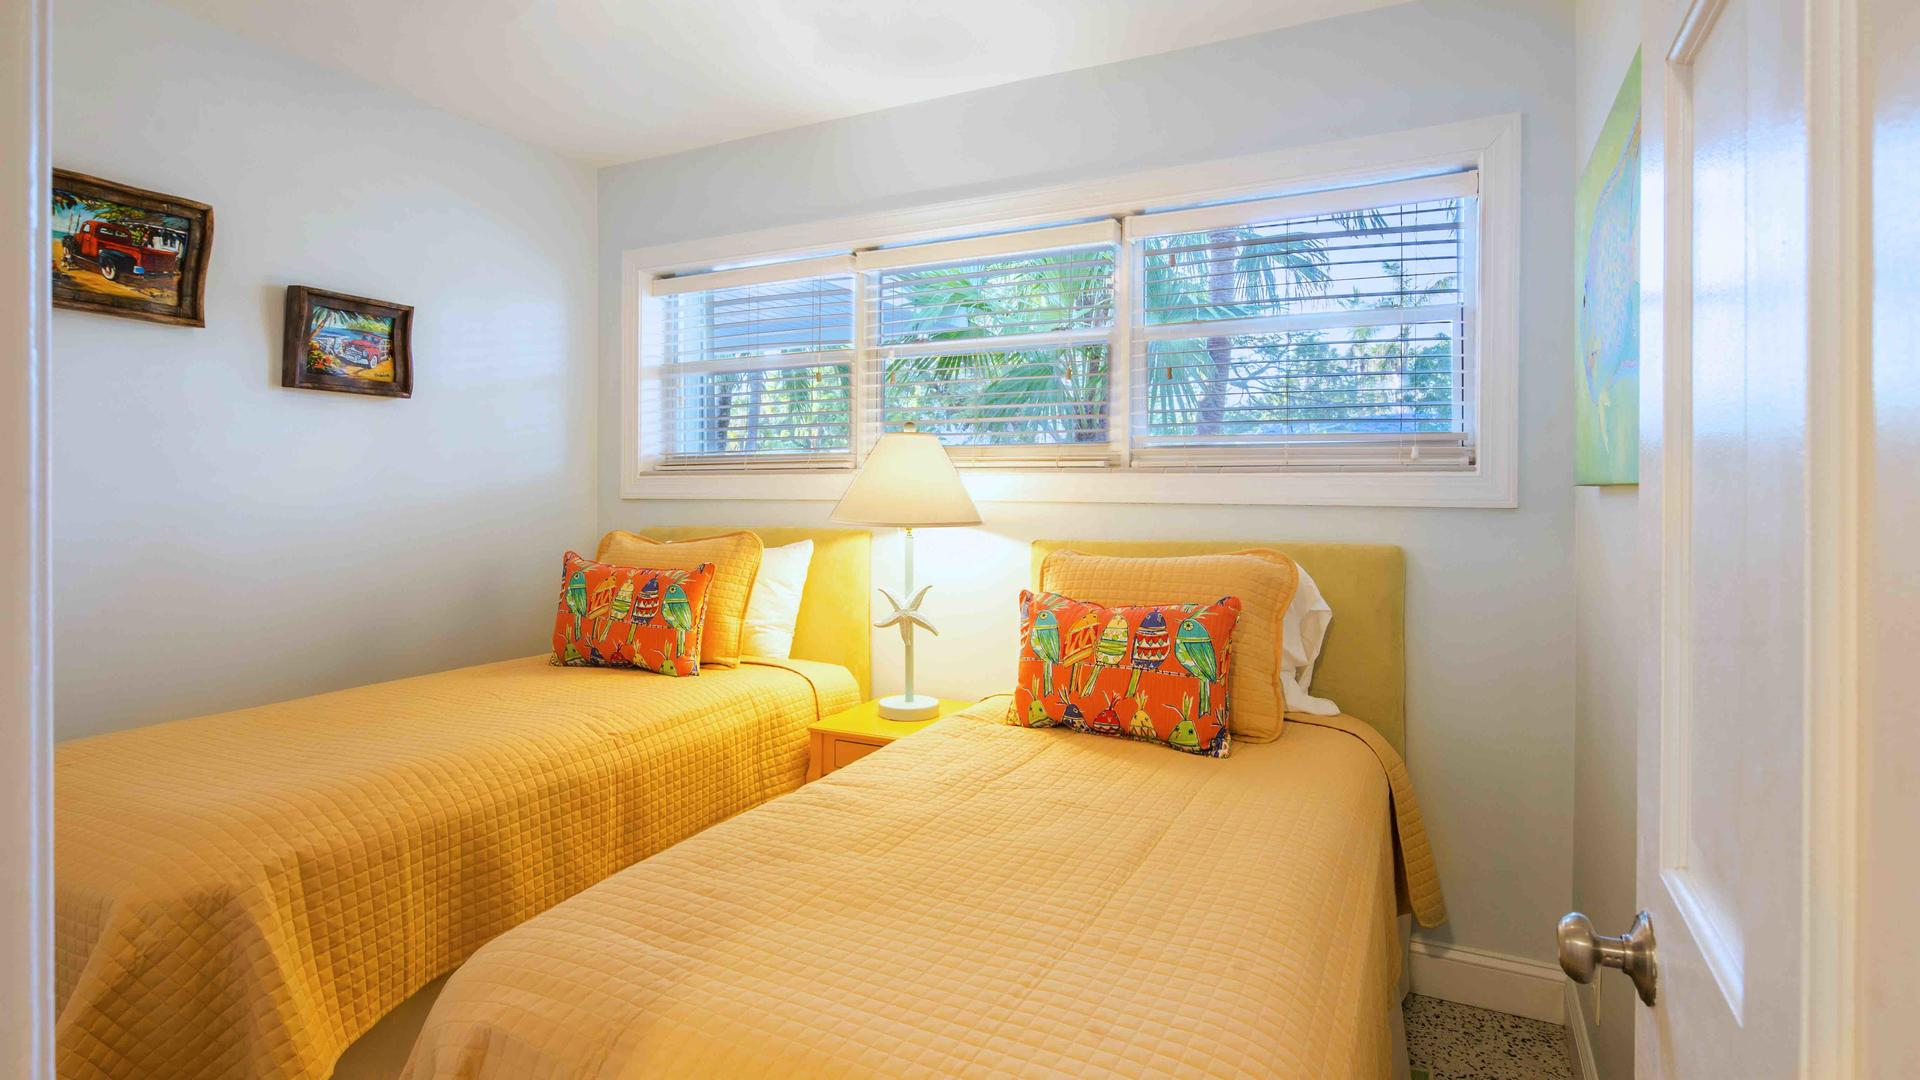 The third bedroom has two twin beds that can convert to a King bed...